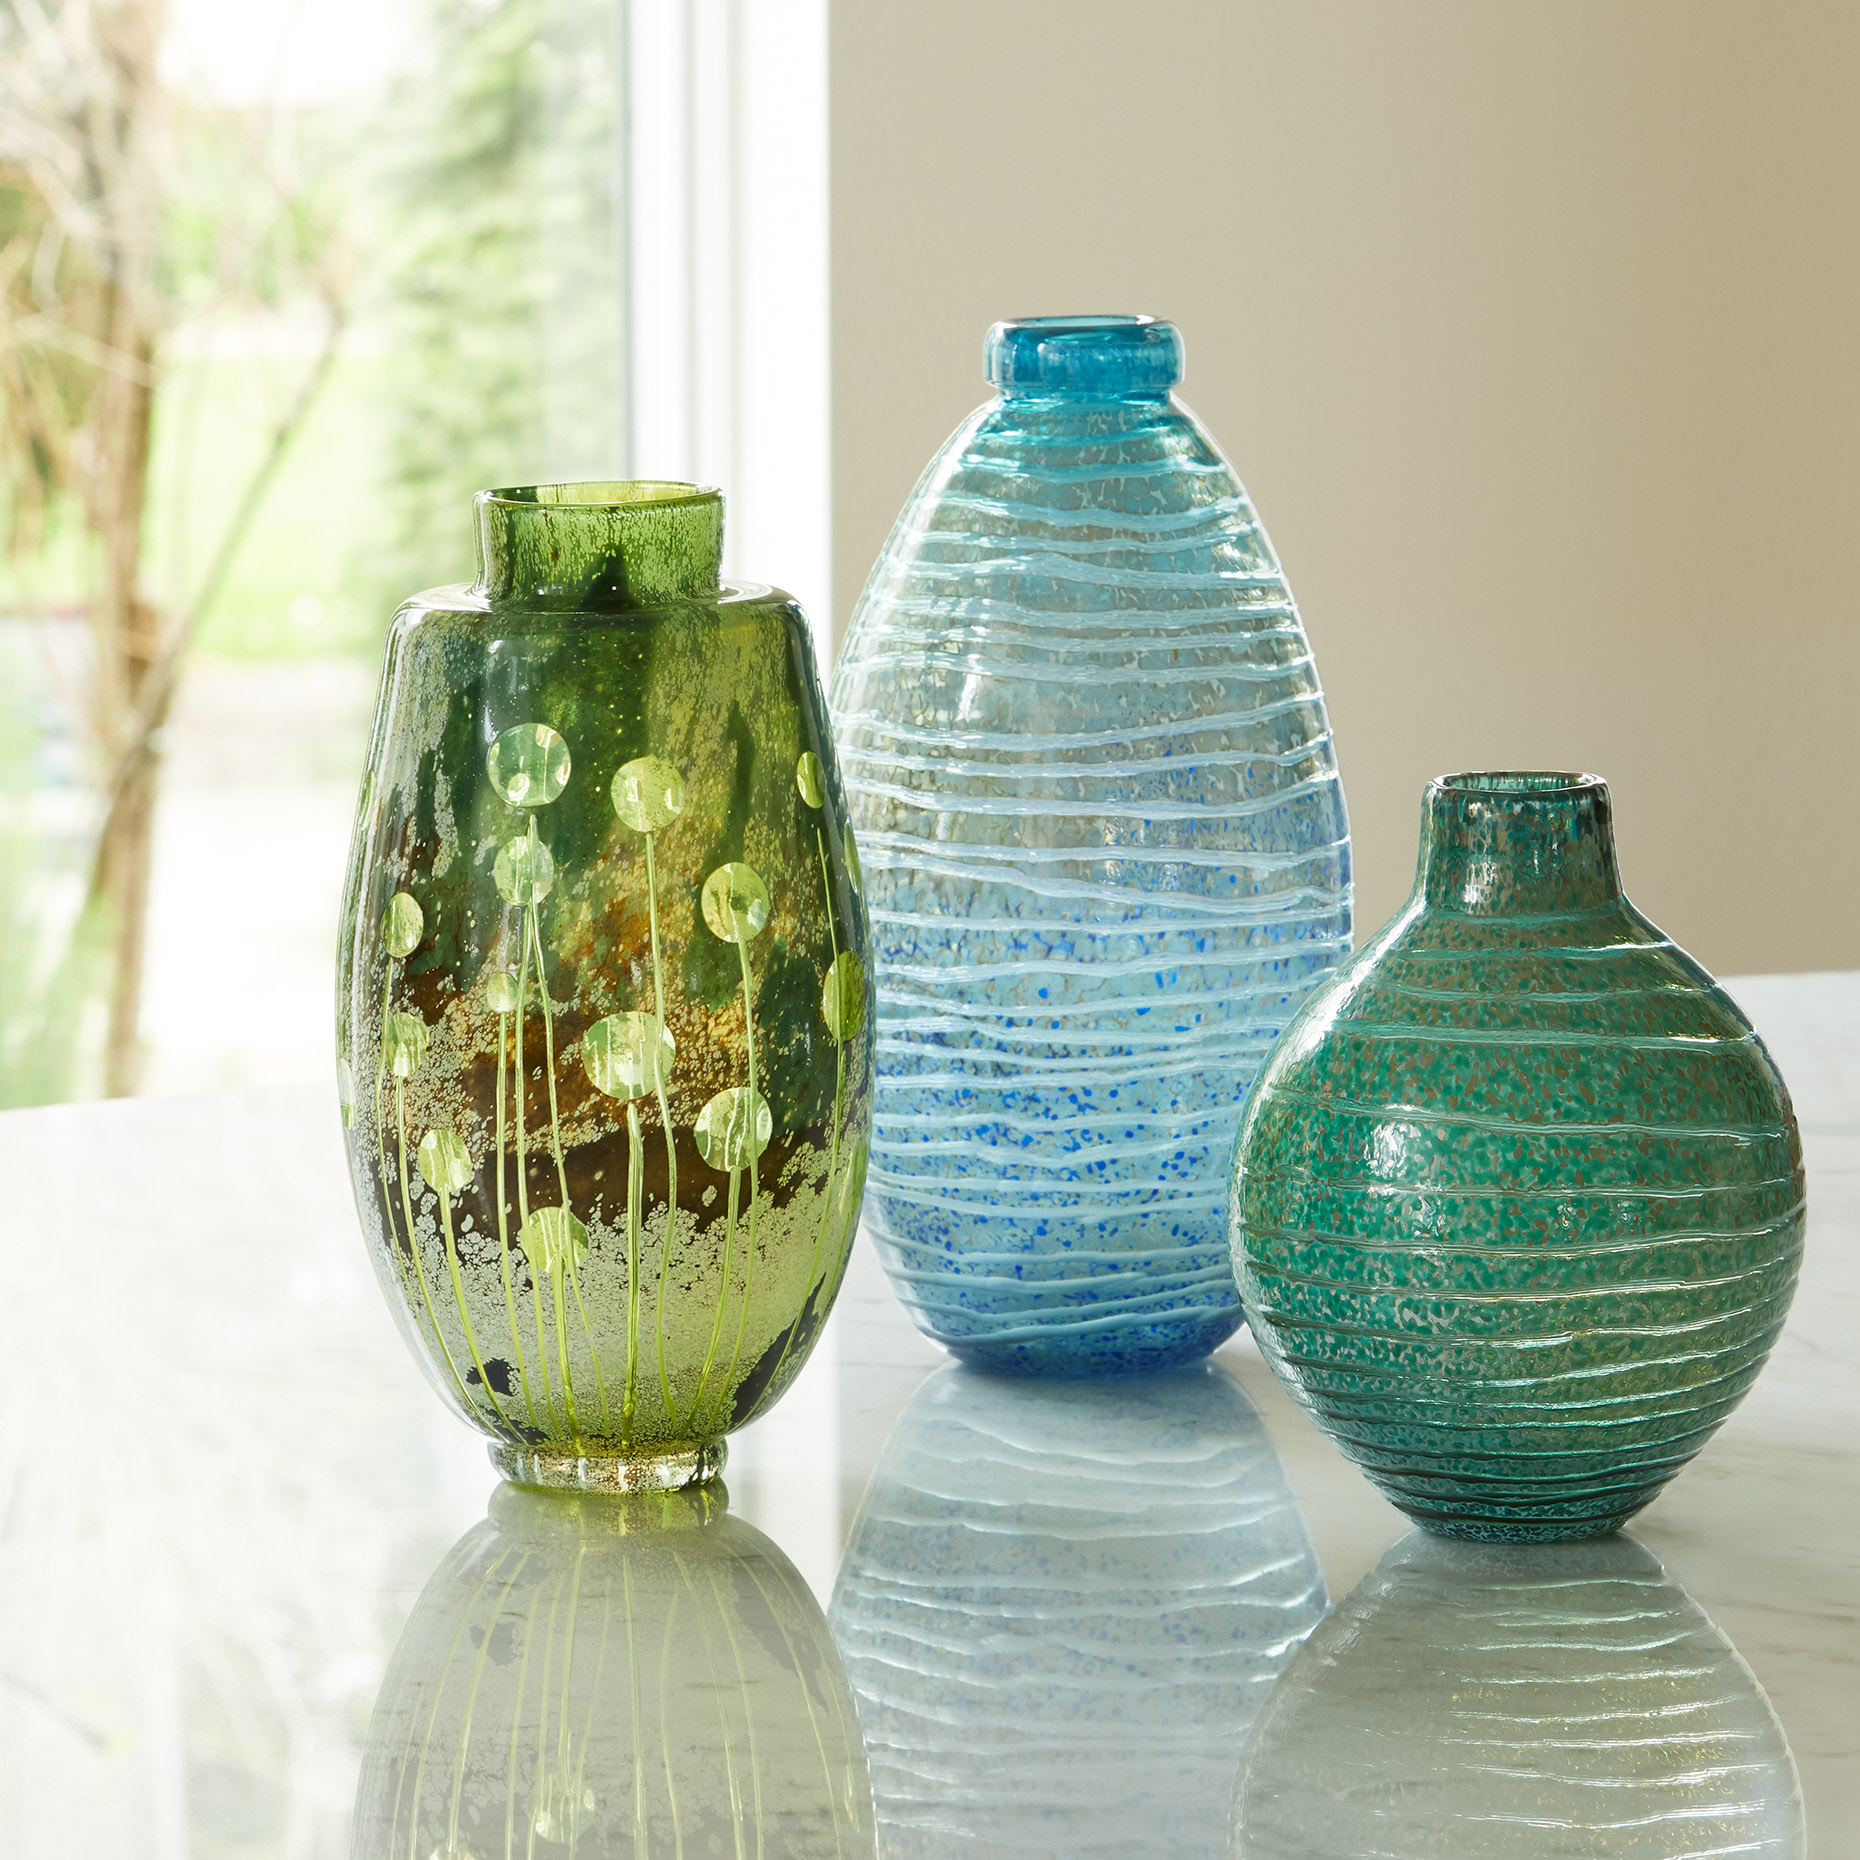 Jones Glass Vases for Artful Home